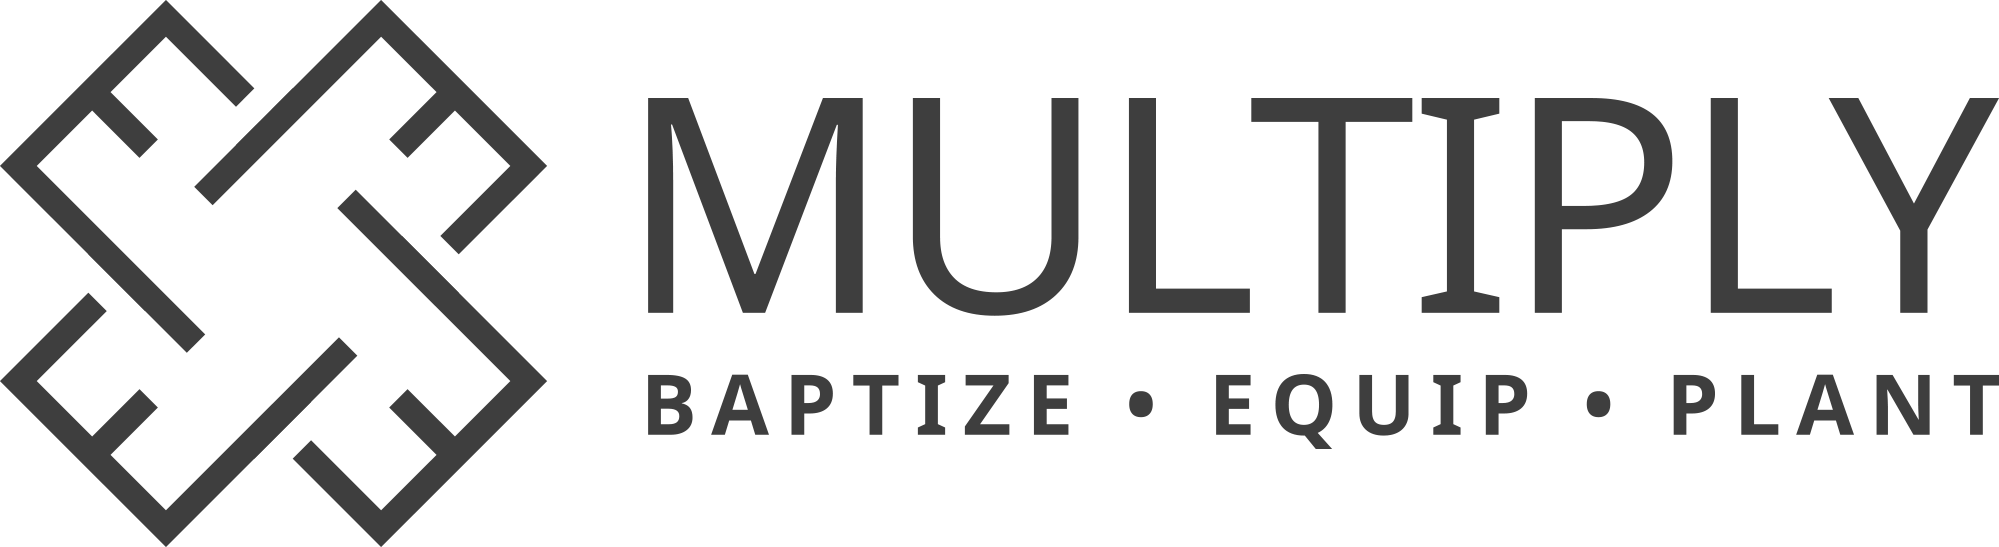 Multiply: Baptize, Equip, Plant